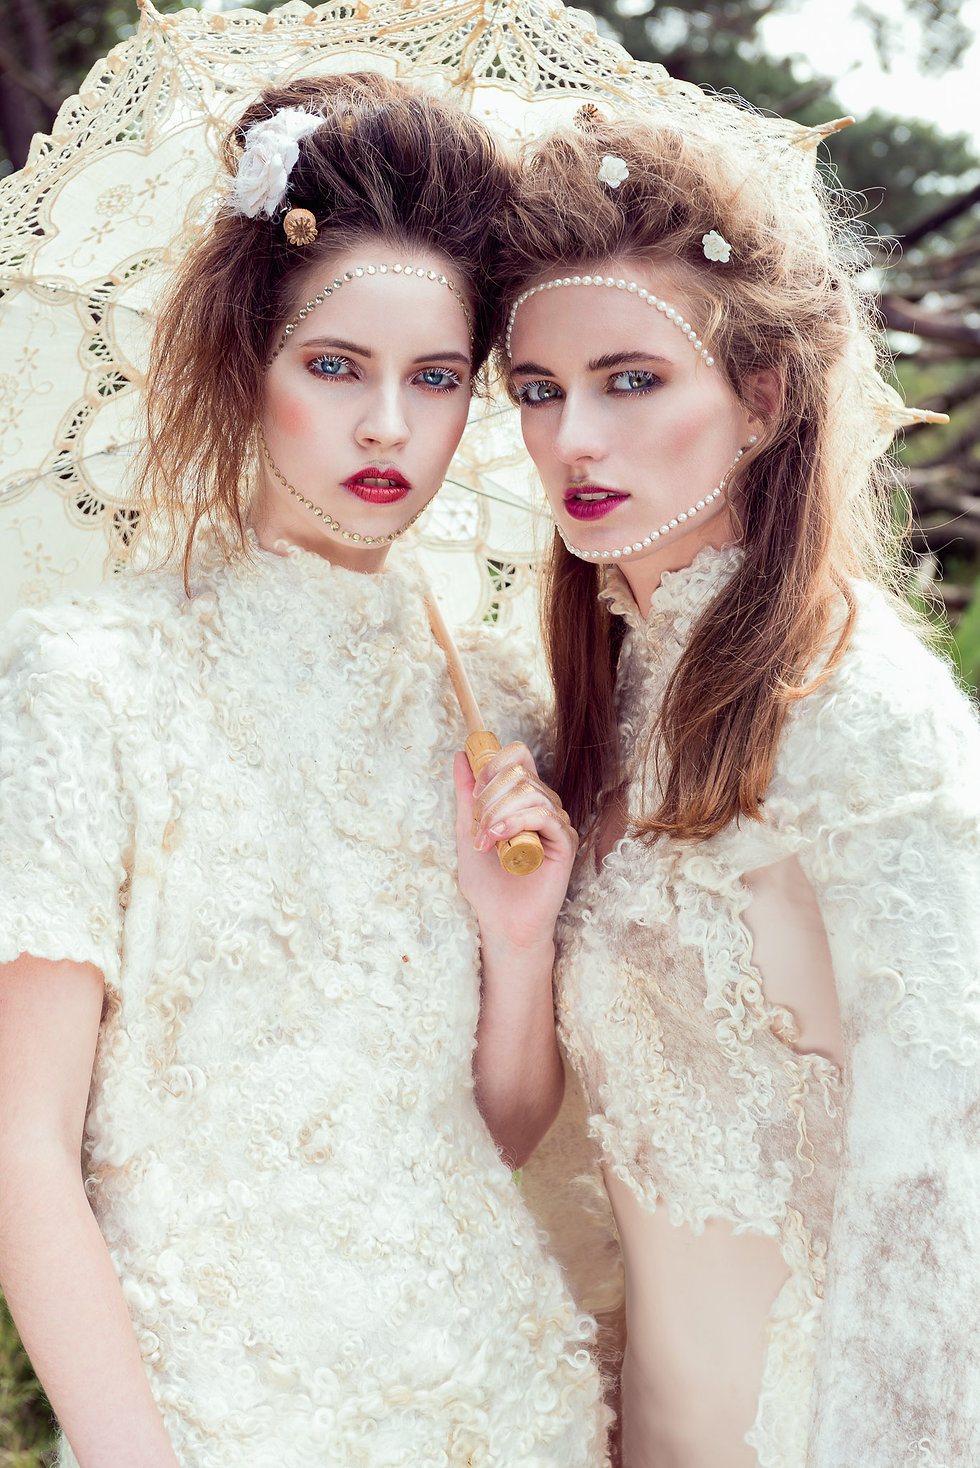 Palette of Nature editorial for Elegant Magazine